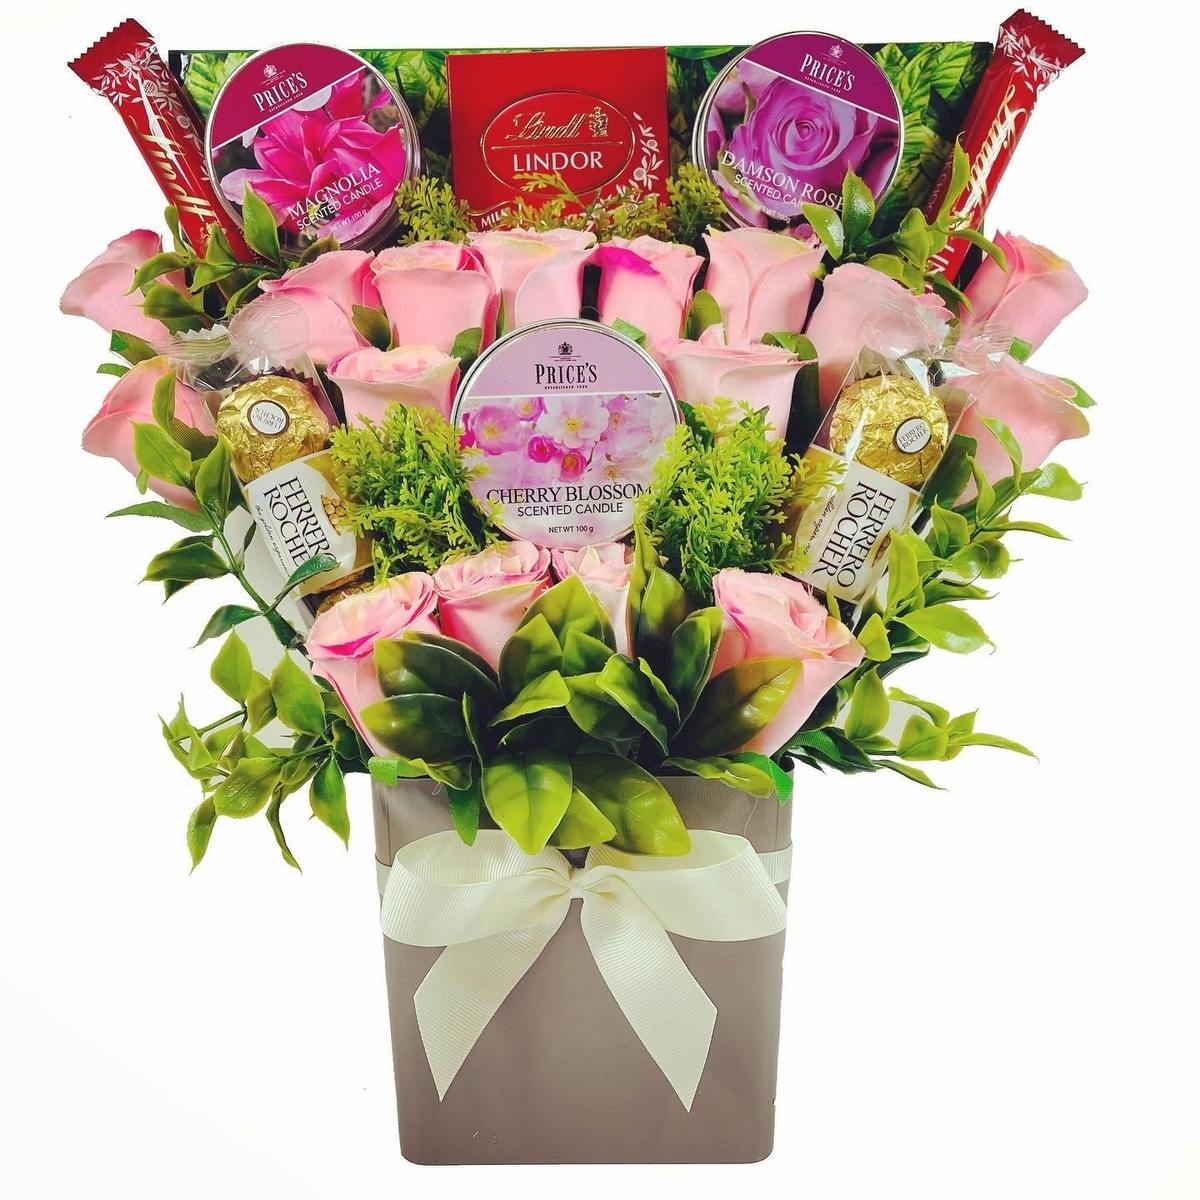 The Price's Candle and Pink Rose Bouquet